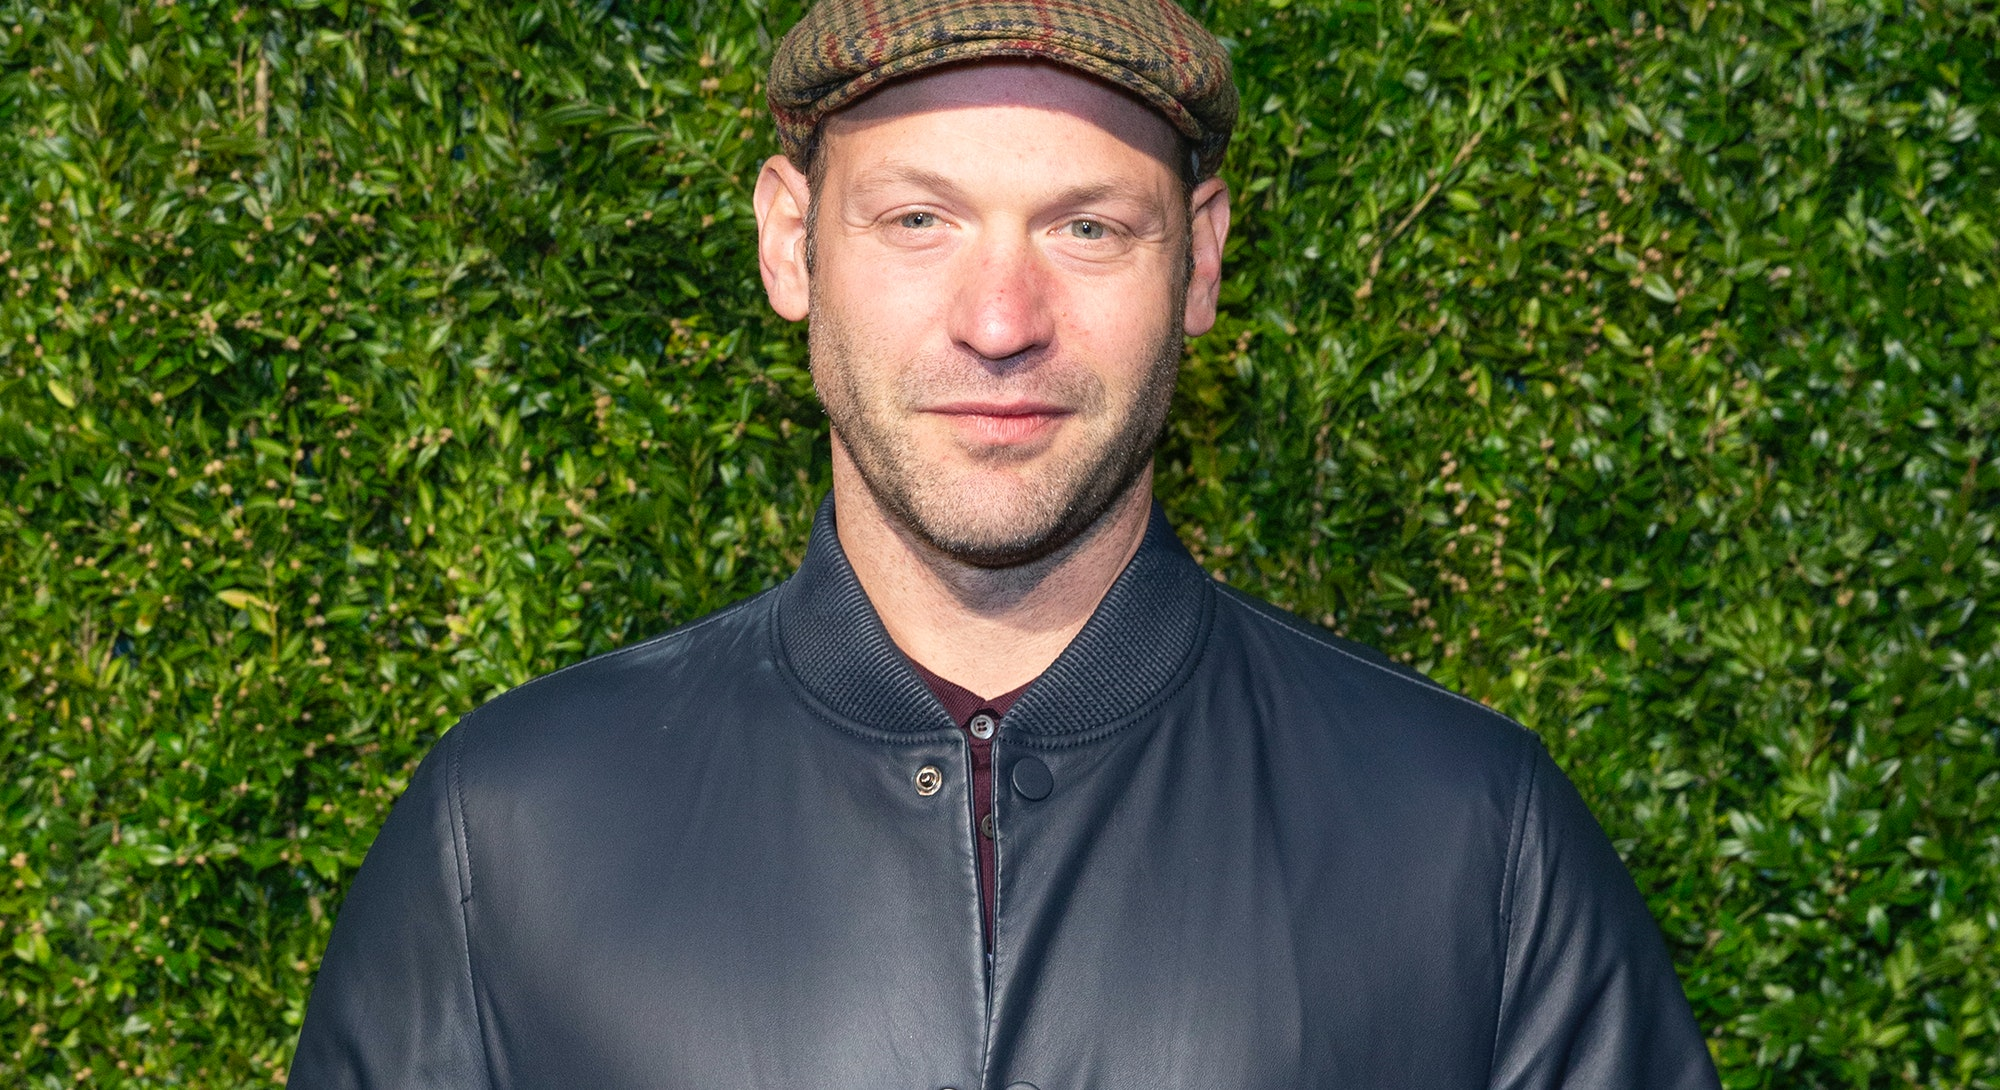 BALTHAZAR RESTAURANT, NEW YORK, UNITED STATES - 2019/04/29: Corey Stoll attends the Chanel 14th Annu...